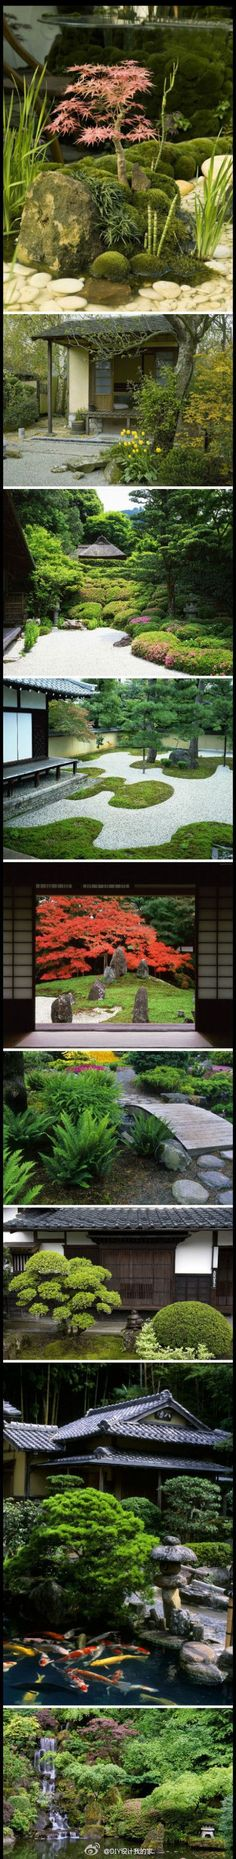 The japanese garden. complexity & simplicity at the same time Garden Garden backyard Garden design Garden ideas Garden plants Japanese Landscape, Japanese Garden Design, Chinese Garden, Japanese Architecture, Landscape Architecture, Landscape Design, Japanese Gardens, Japanese Style, Japanese Plants